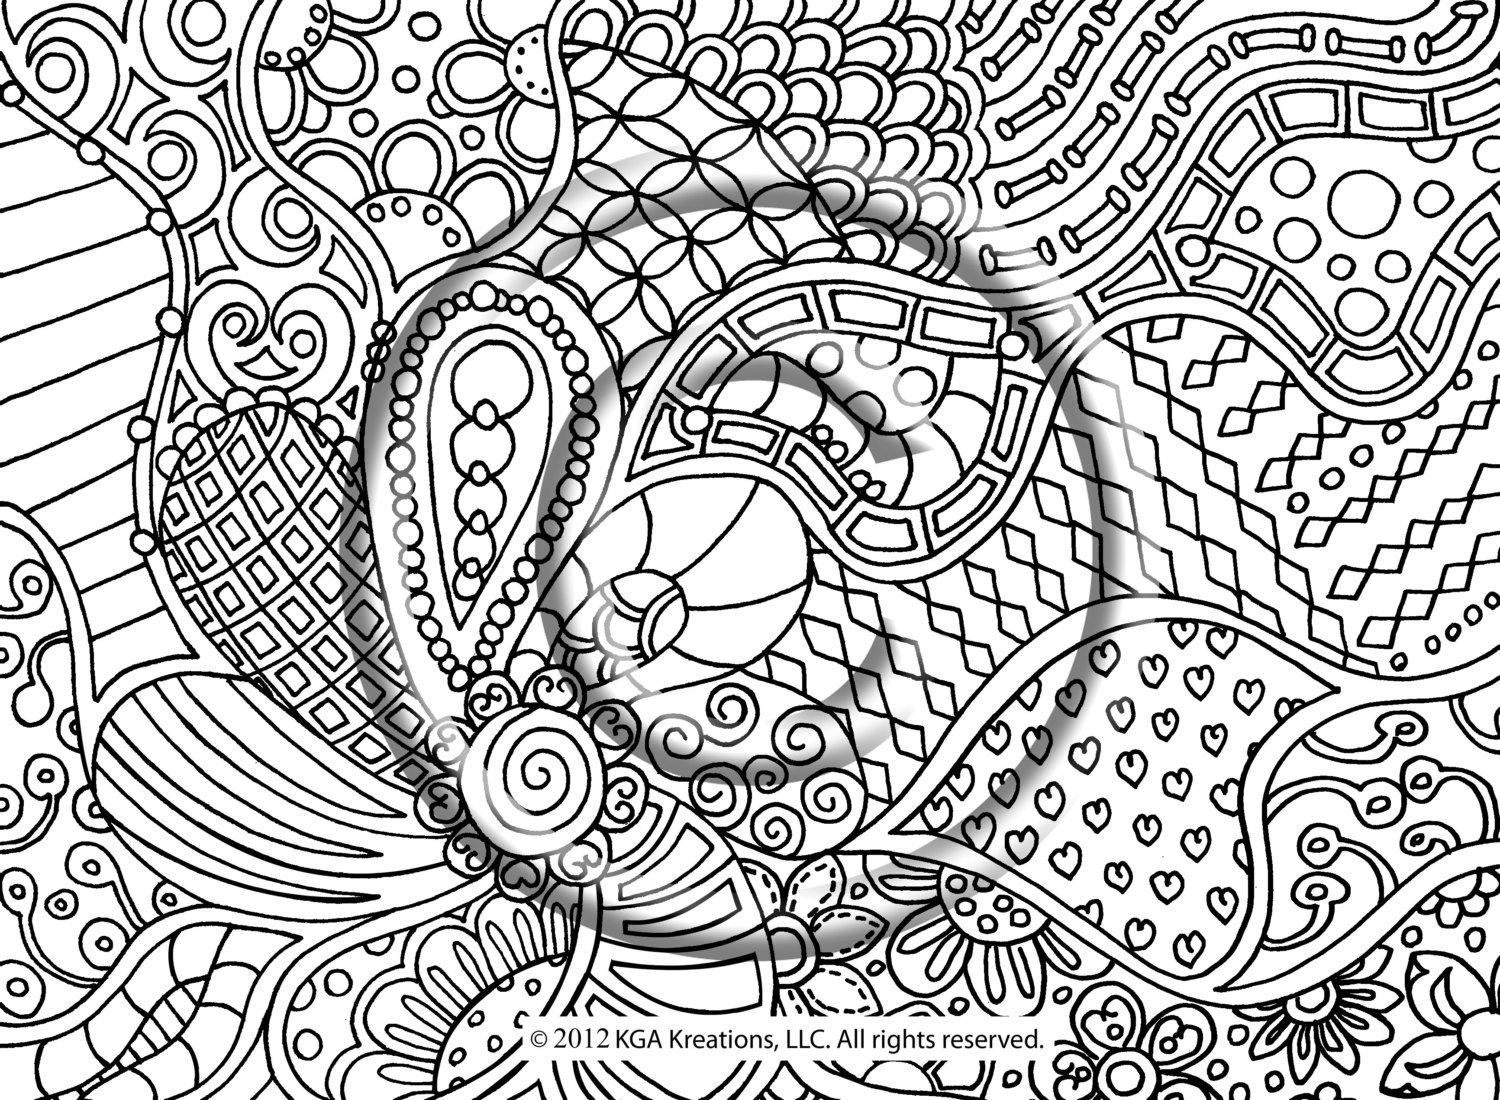 Hippy Drawing at GetDrawings.com | Free for personal use Hippy ...